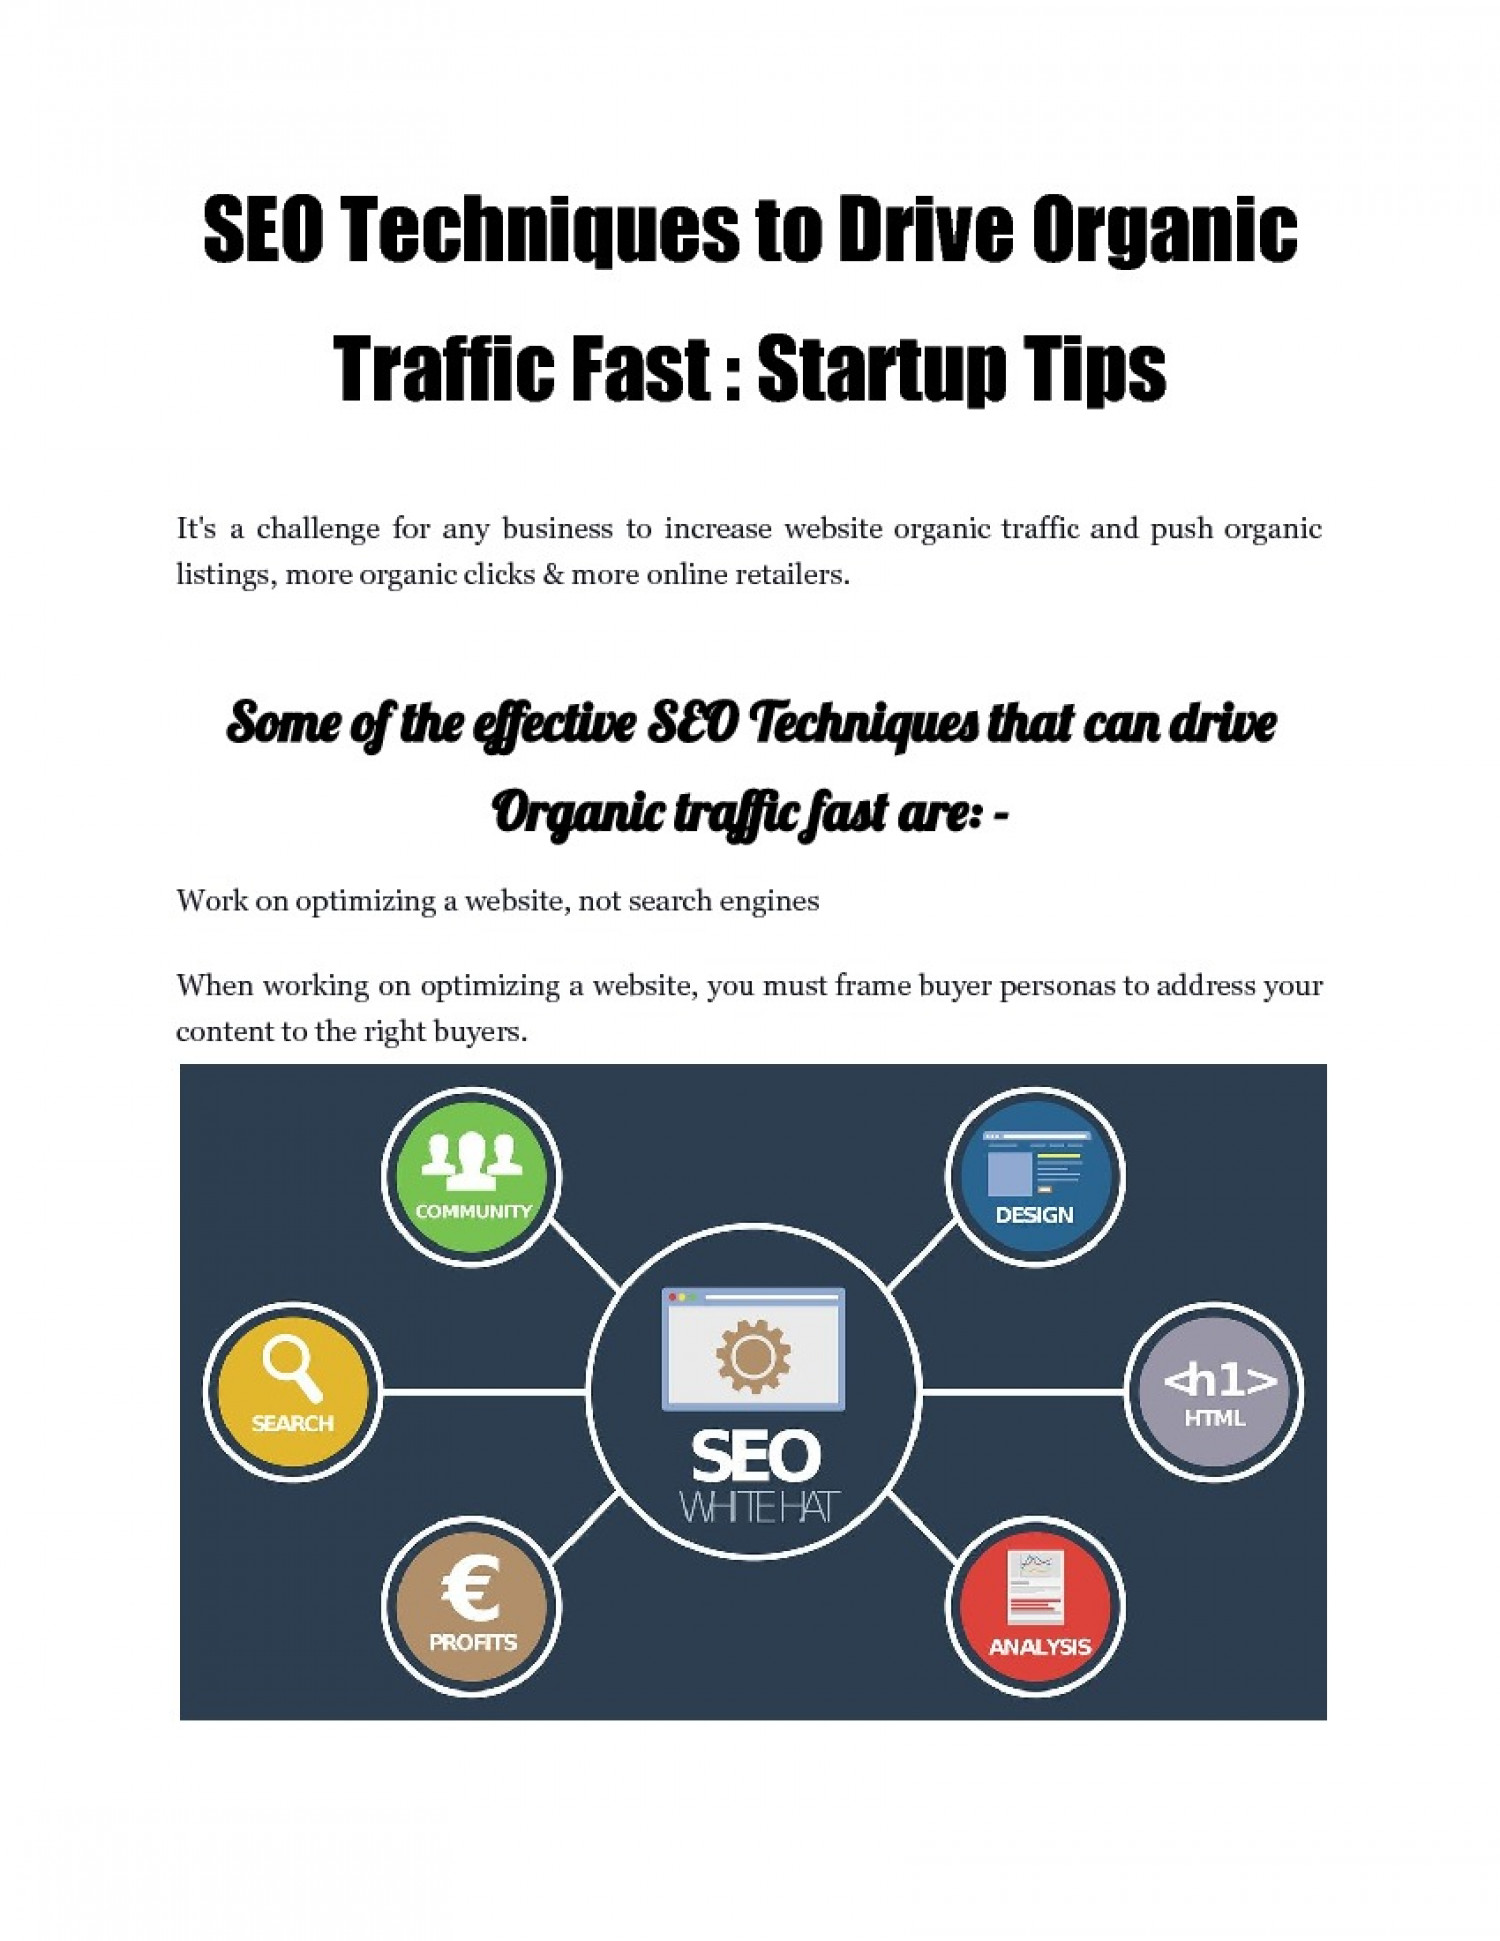 SEO Techniques to Drive Organic Traffic Fast - Startup Tips Infographic